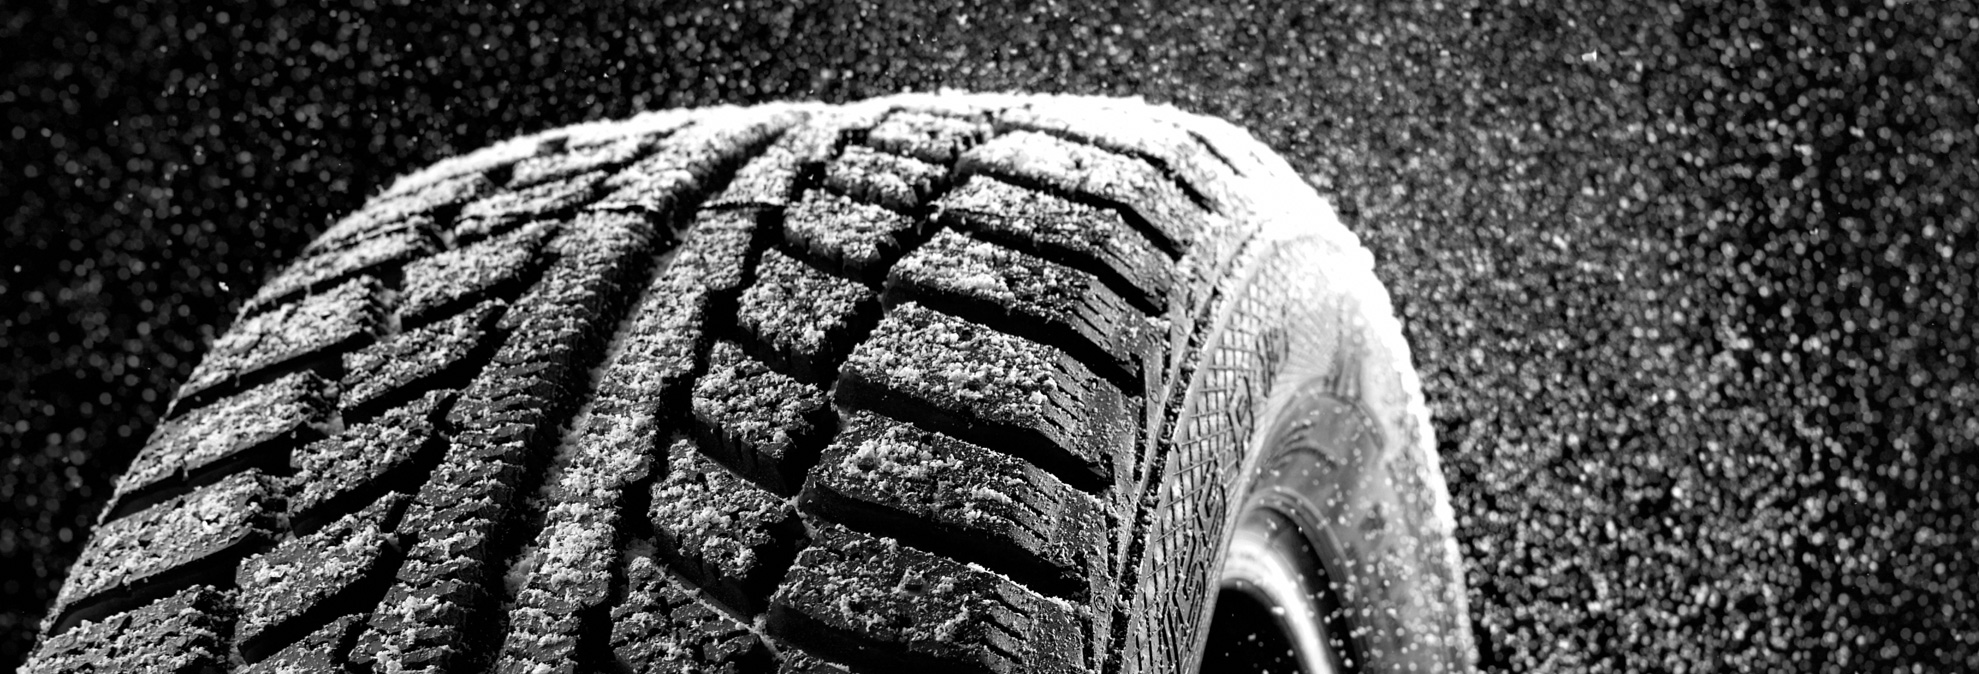 Tire Ratings Guide >> Winter/Snow Tires vs. All-Season Tires Comparison - Consumer Reports